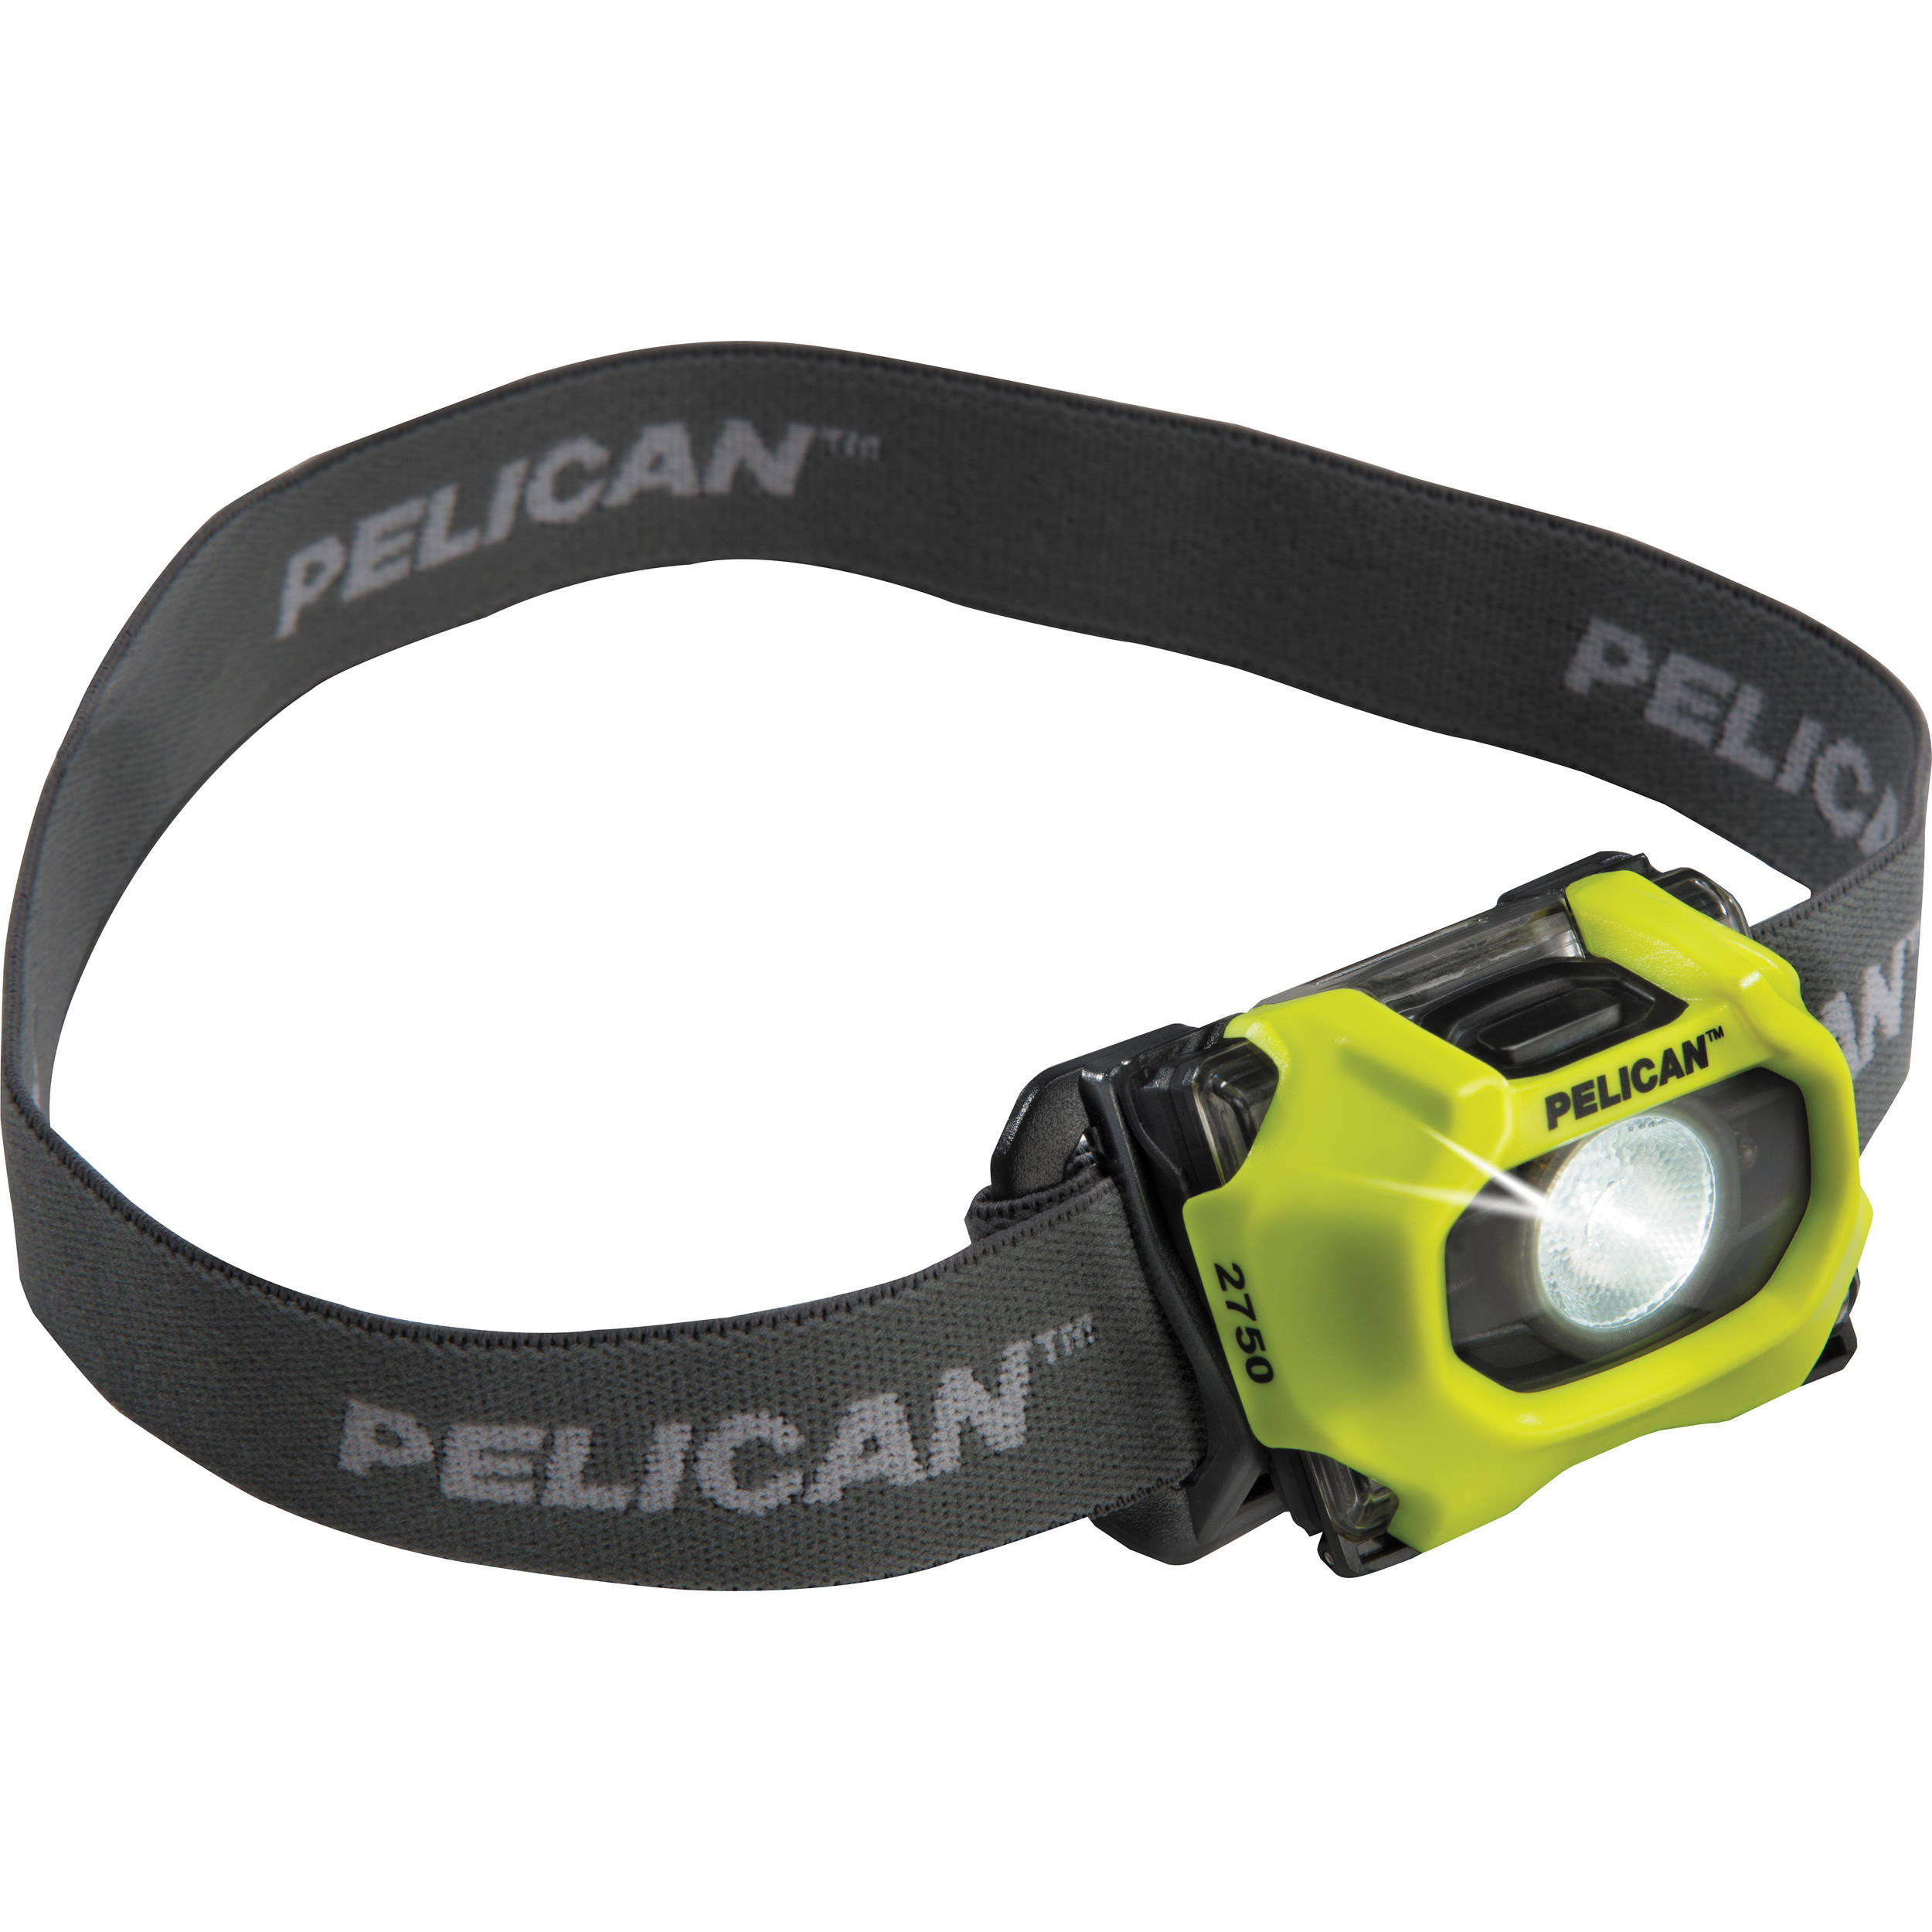 Pelican 2750 LED Headlight (Yellow)